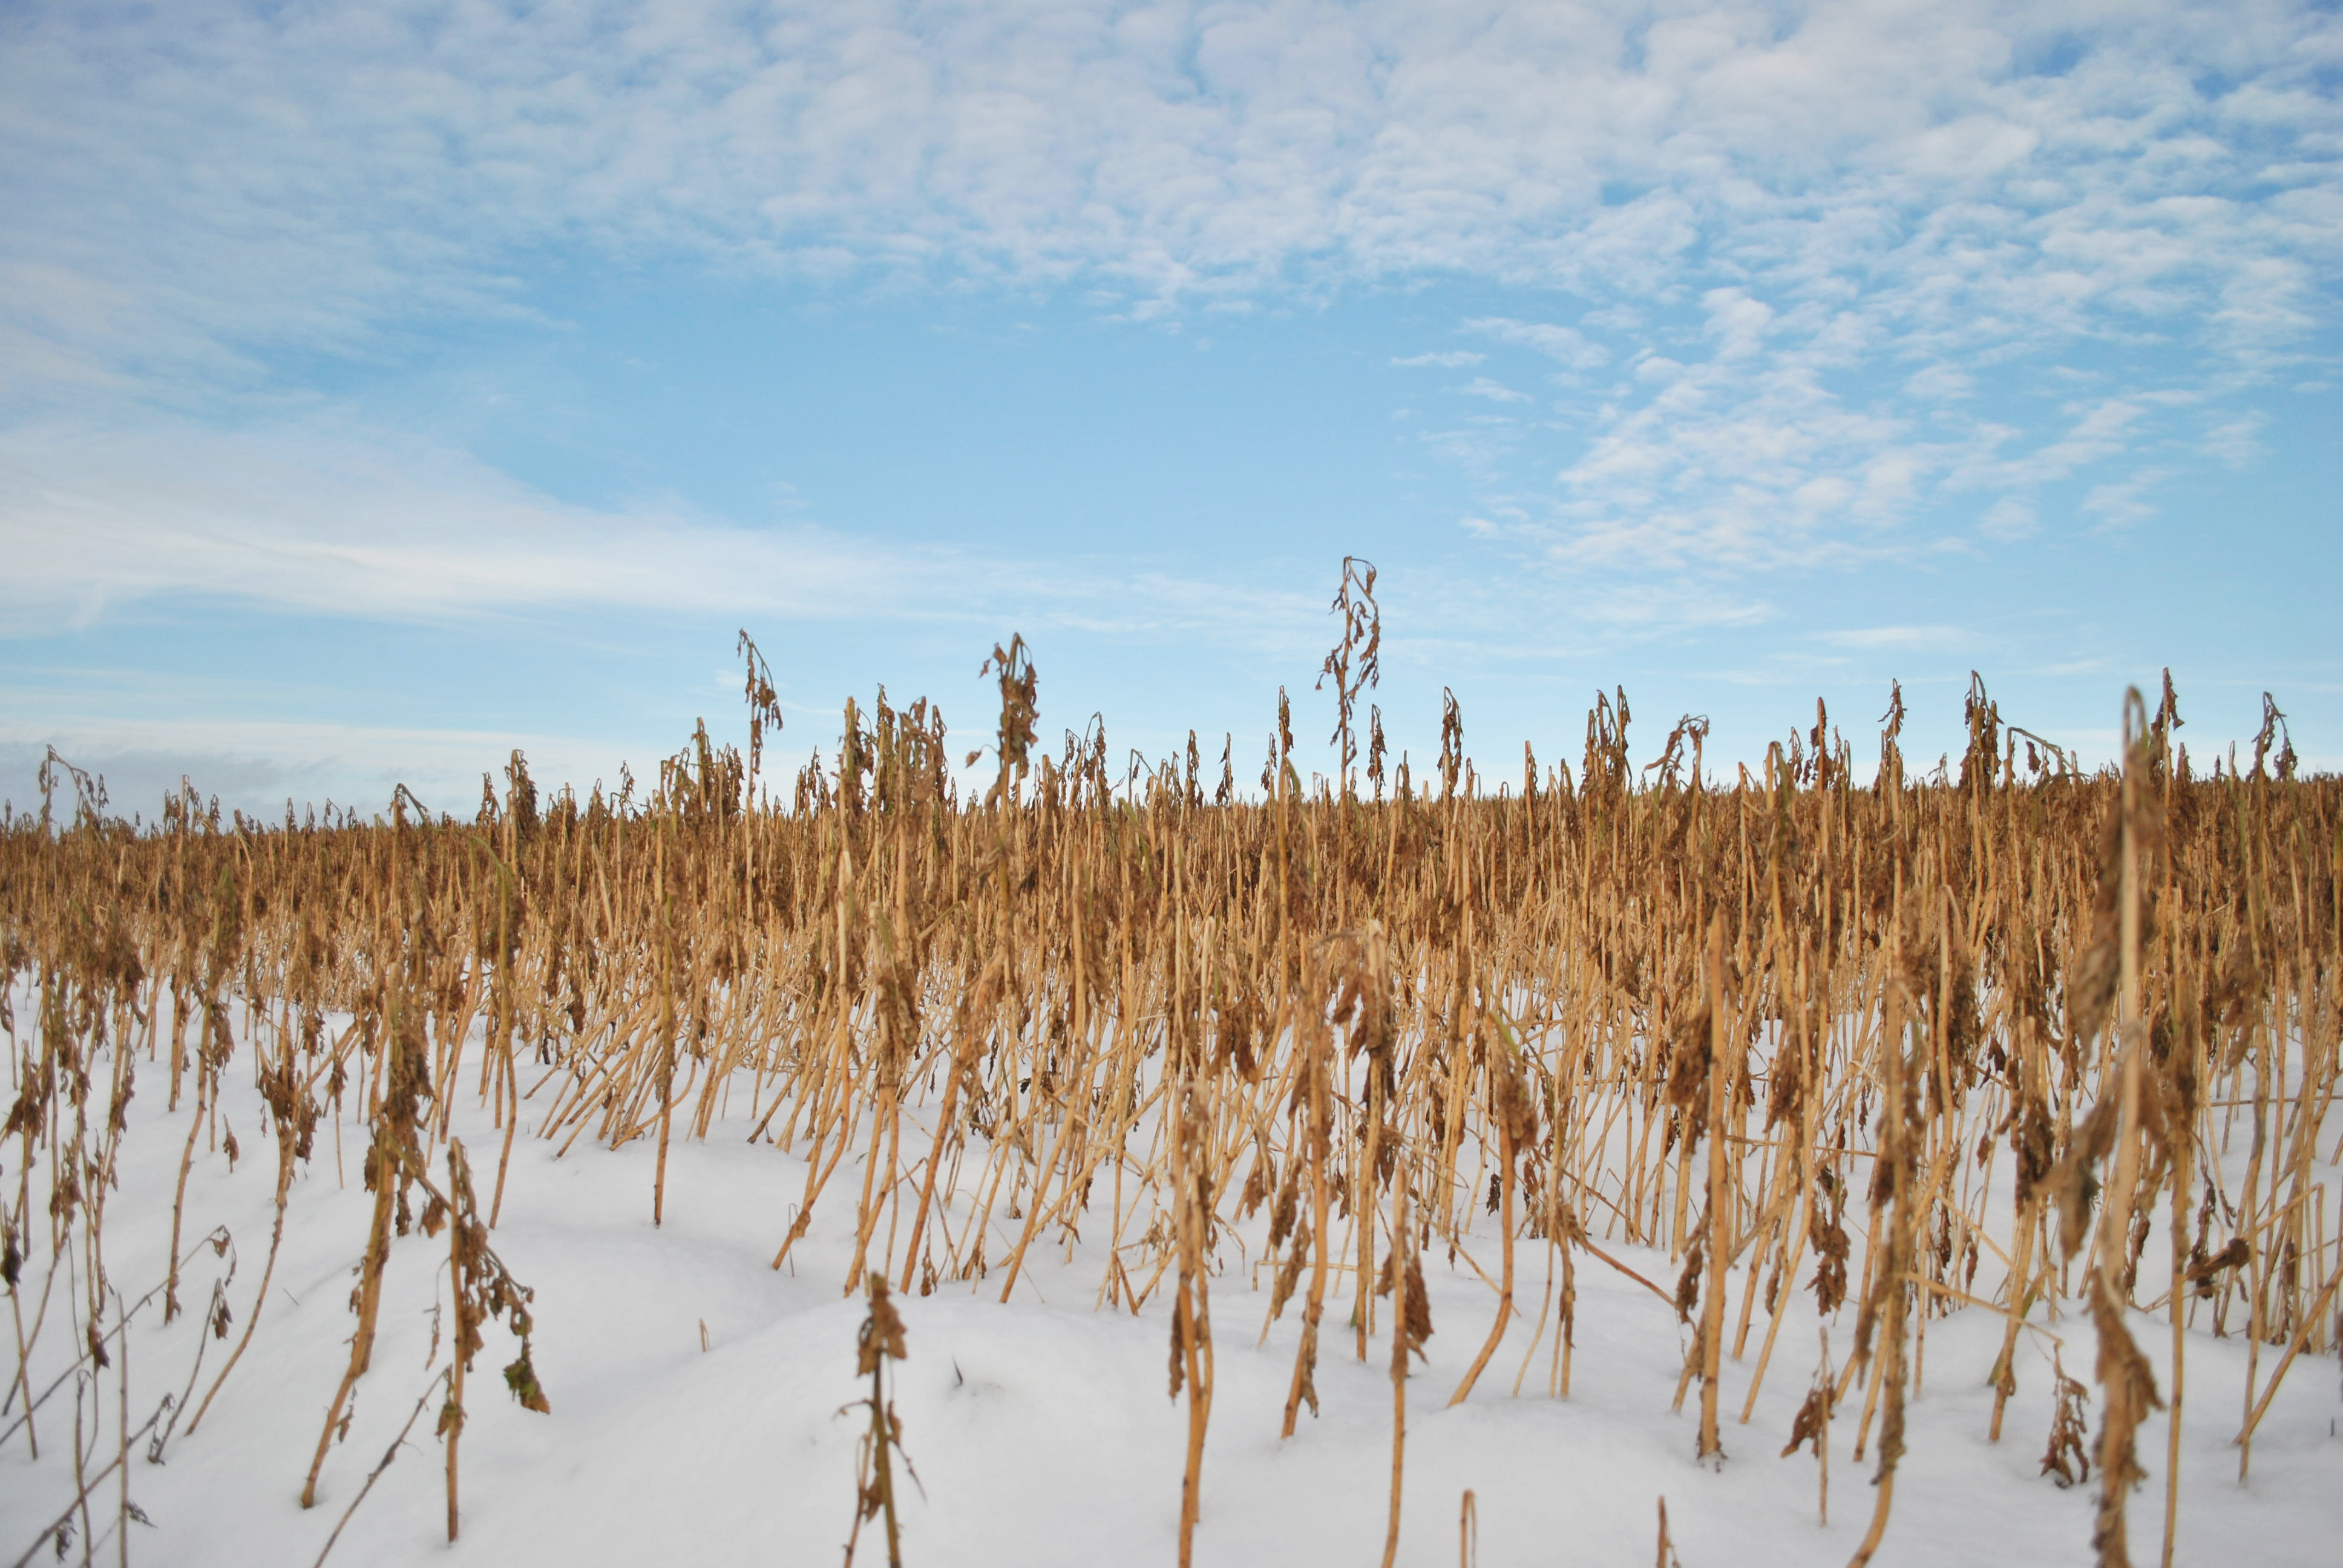 Cover crops left over winter in a field stick up above the snow.